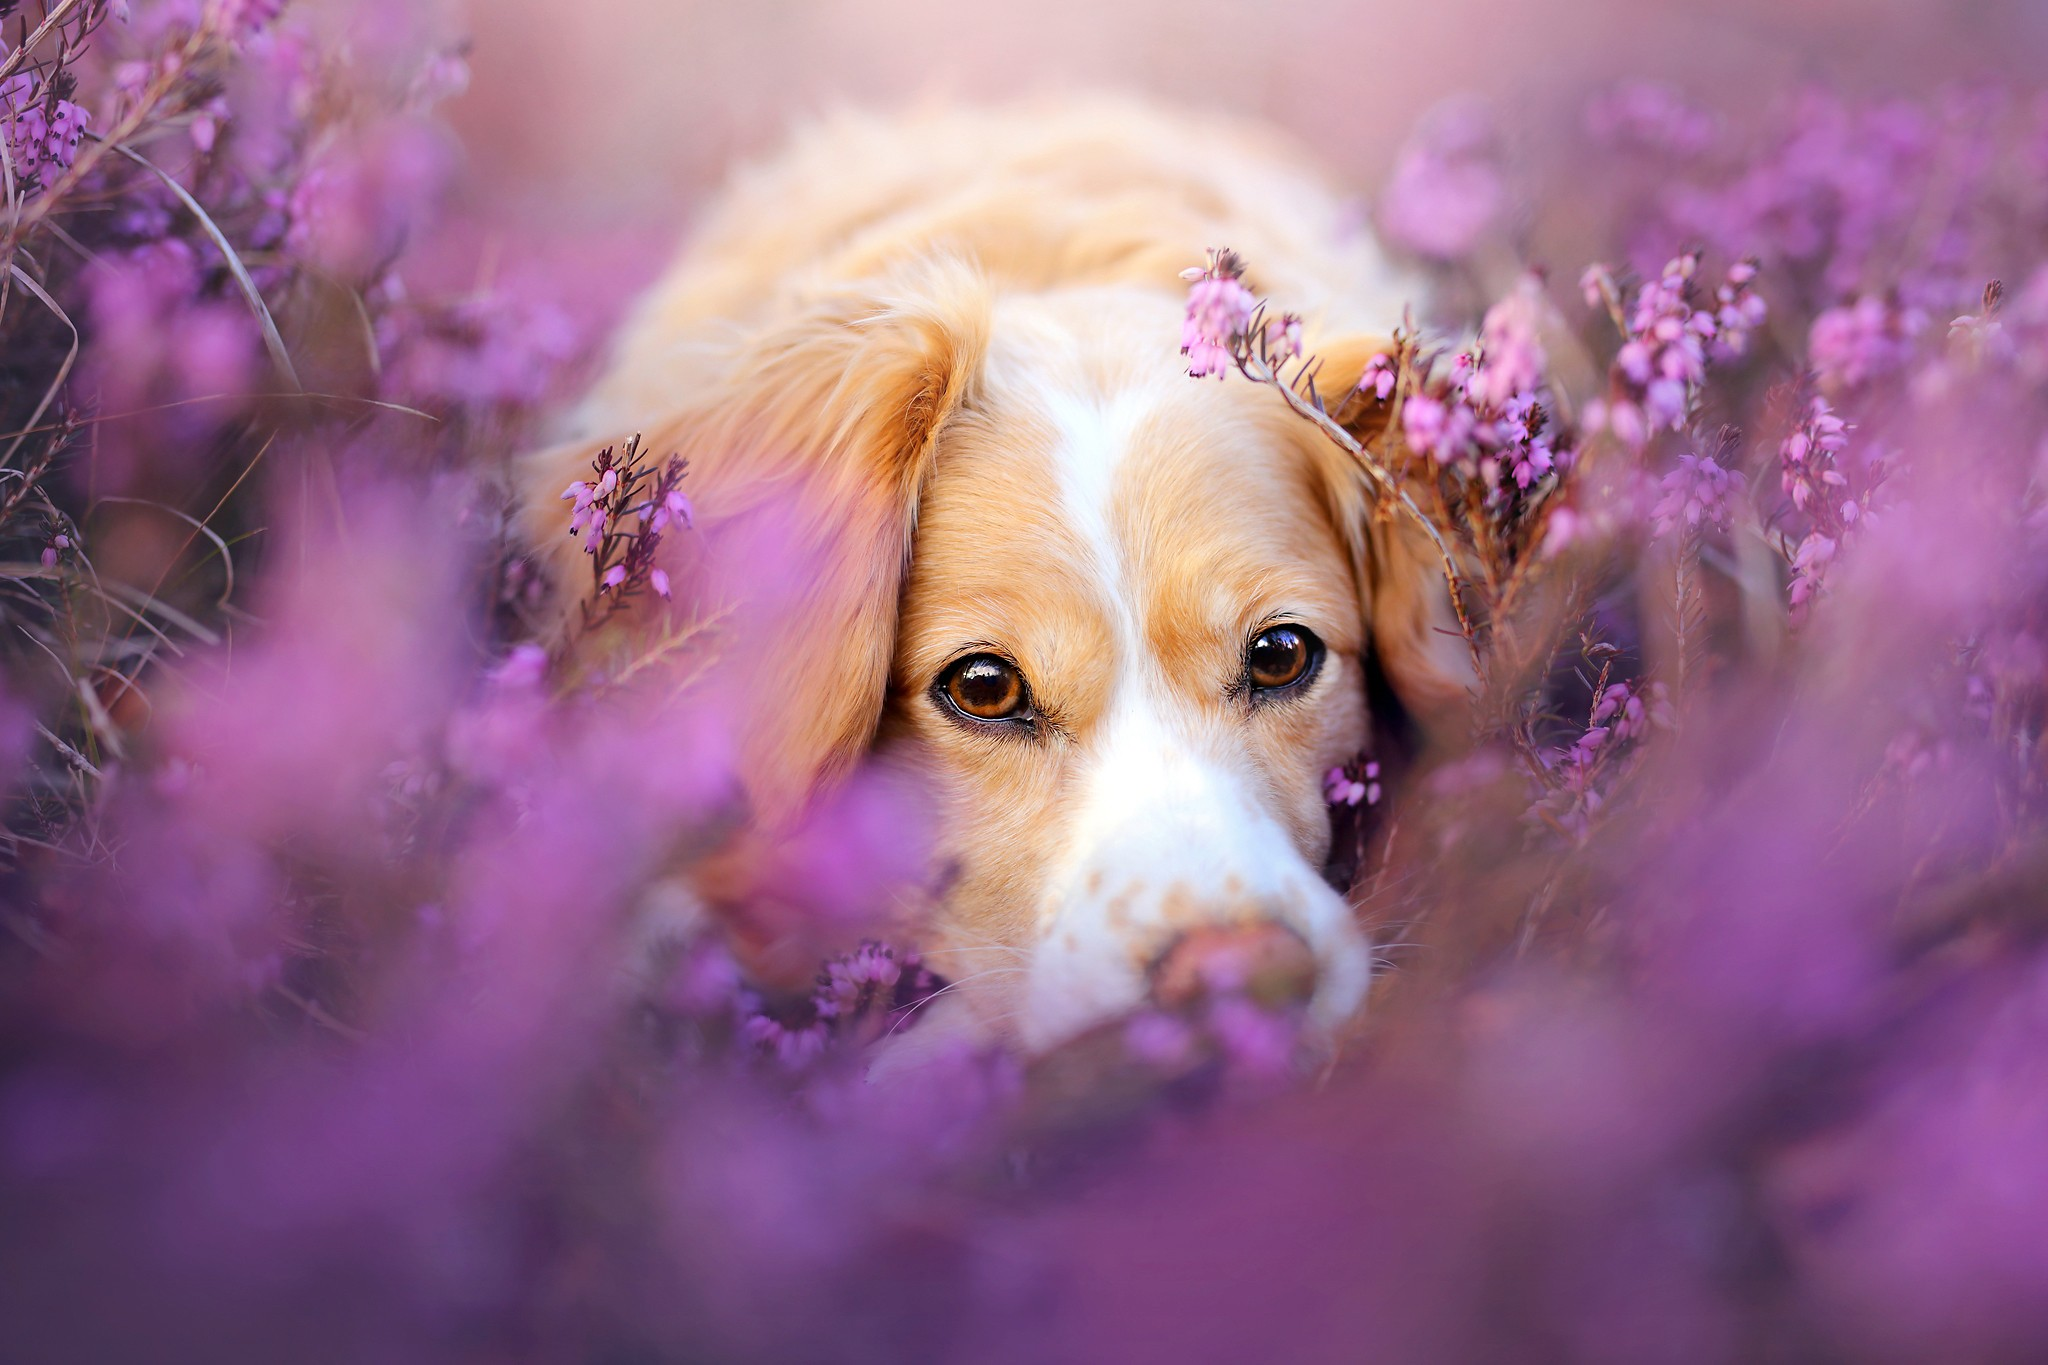 cute dog in flowers | animals hd 4k wallpapers